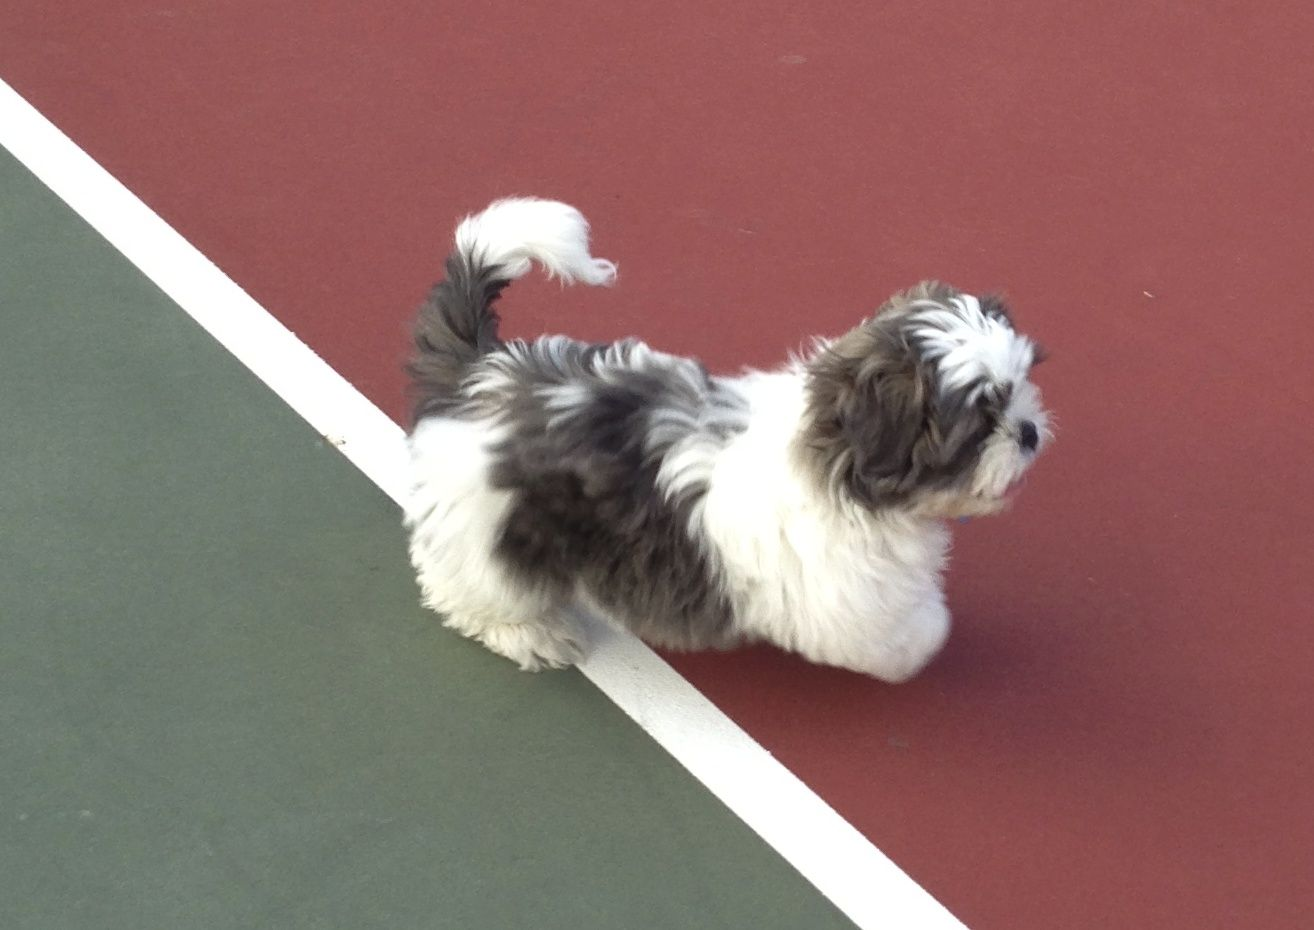 Sparky on the tennis court